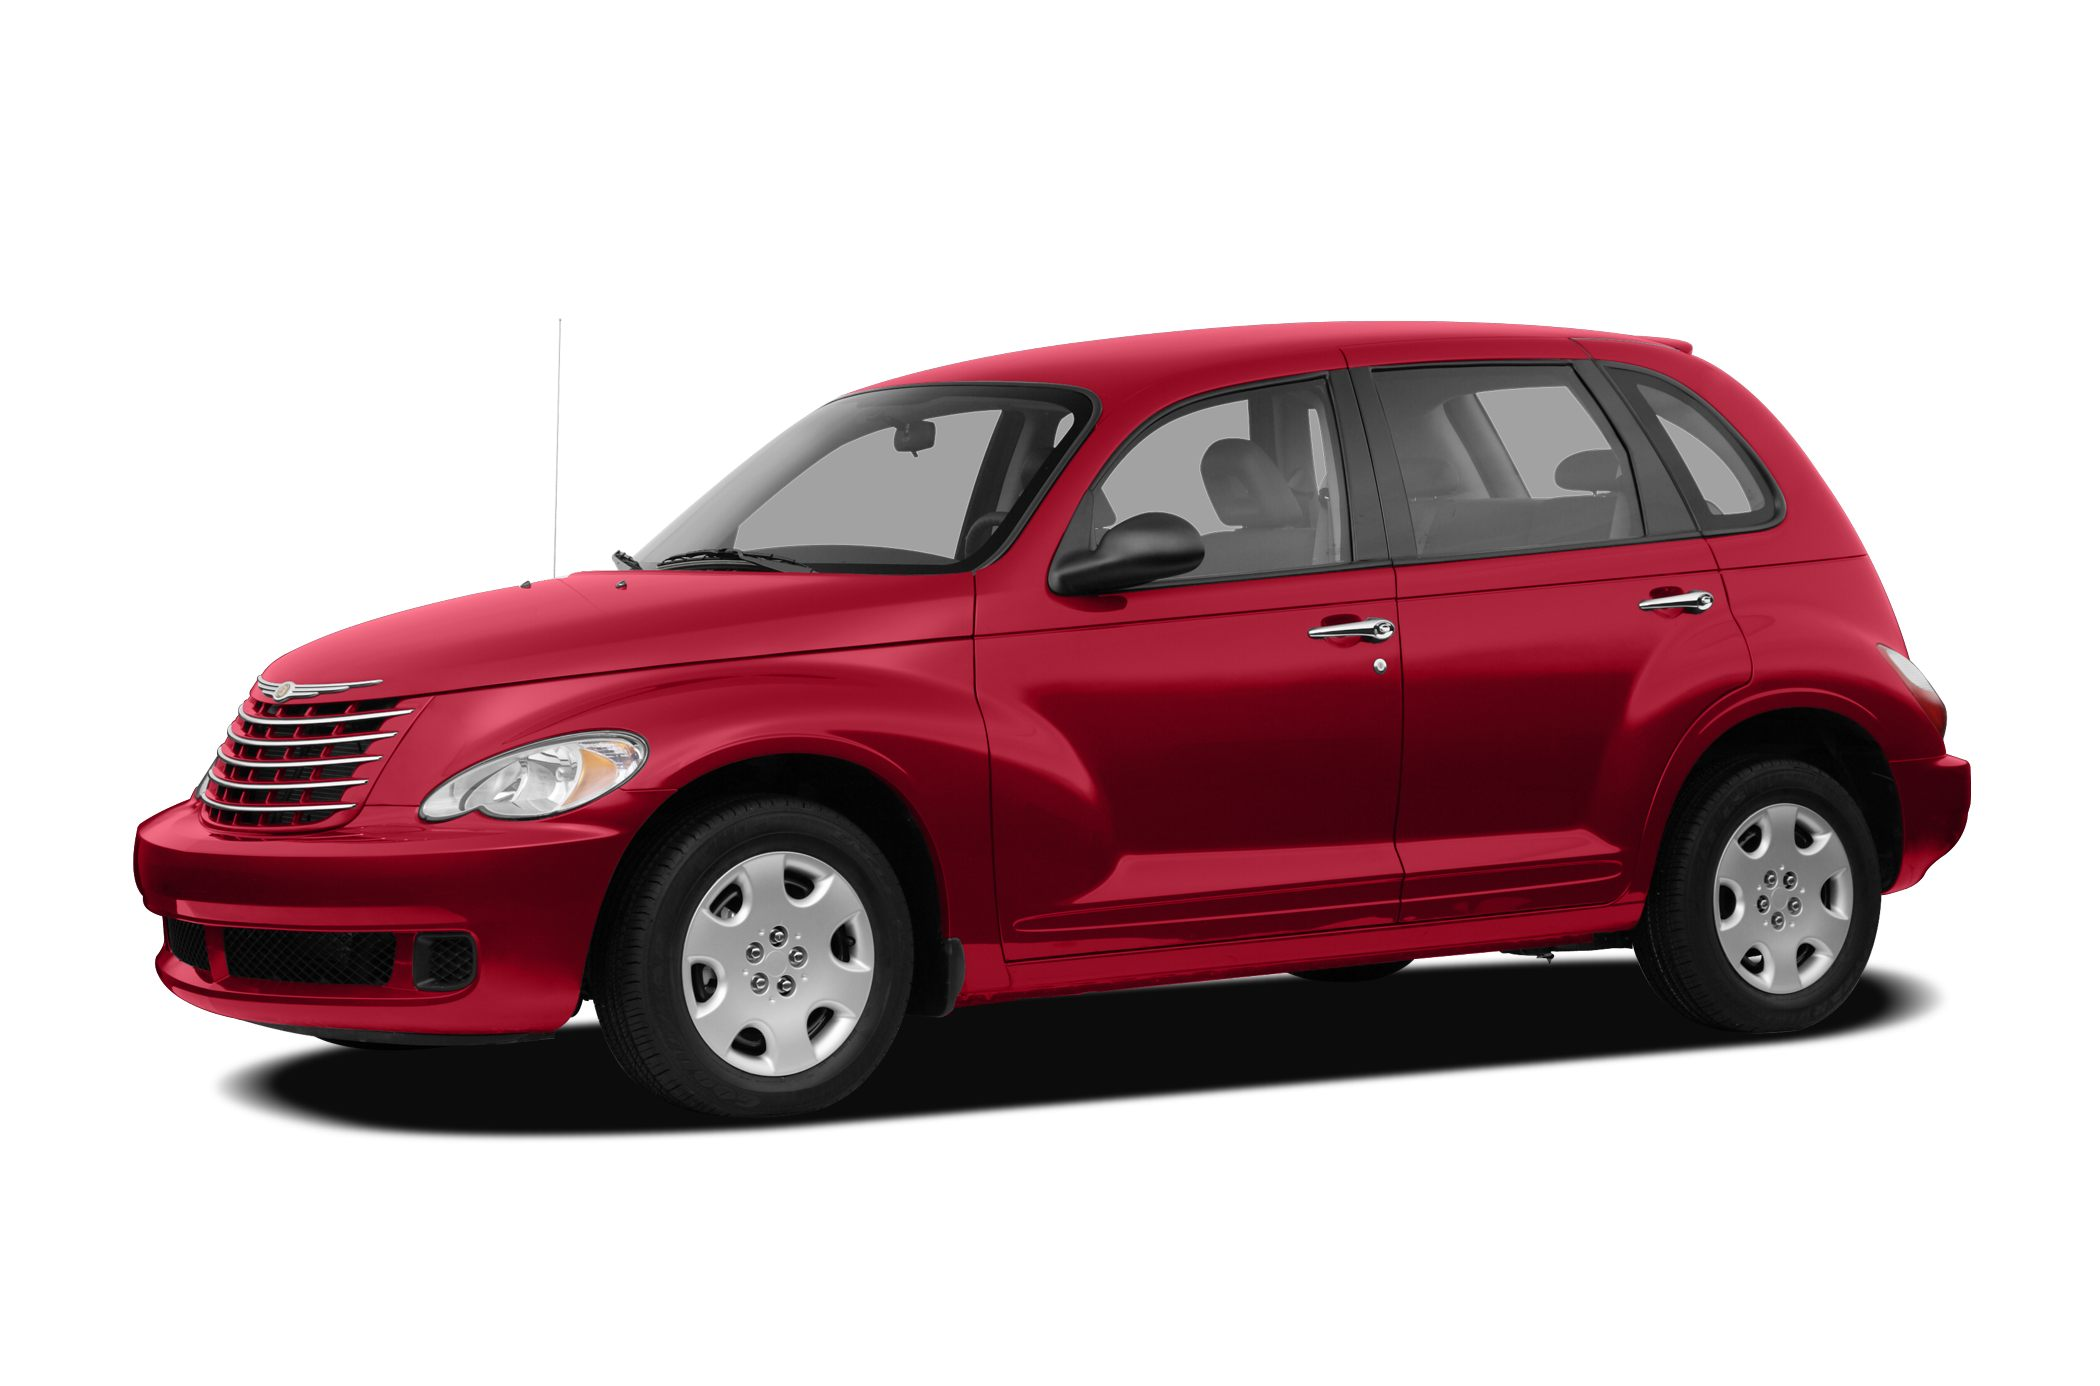 2009 Chrysler PT Cruiser LX Wagon for sale in Aurora for $6,999 with 70,935 miles.